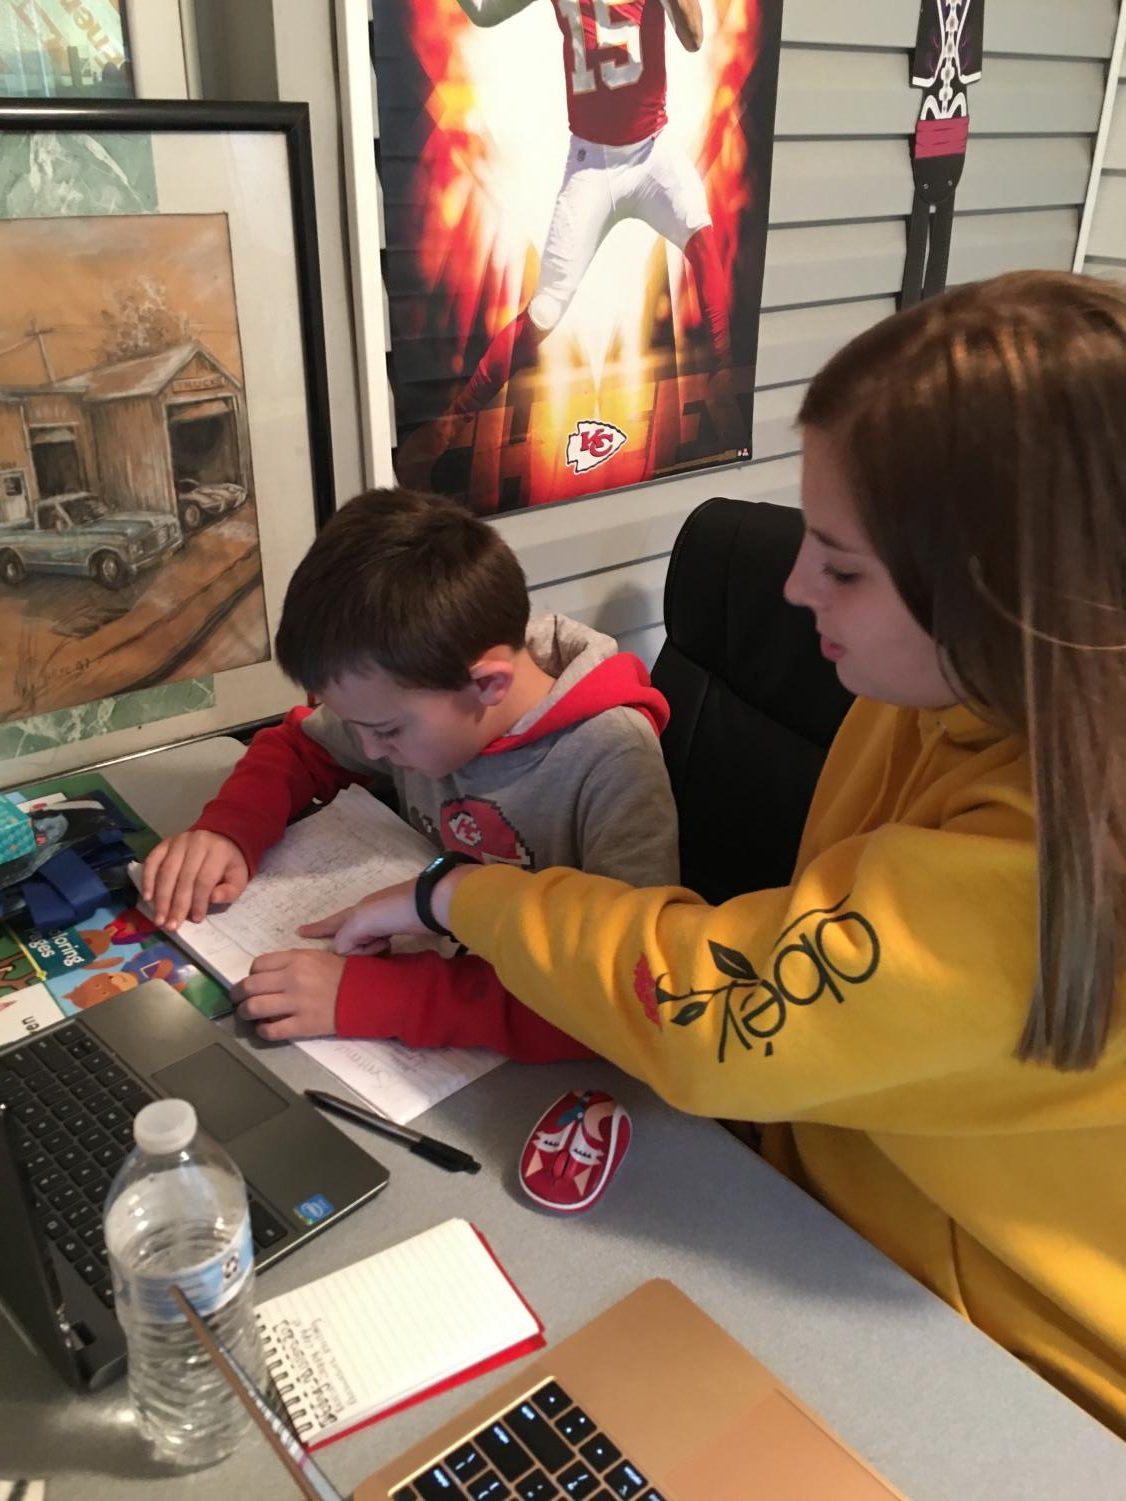 Sophomore Perrie Judd and fourth grader Marshall Judd work on their assignments for Launch. Perrie Judd joined the Launch program to protect her family.